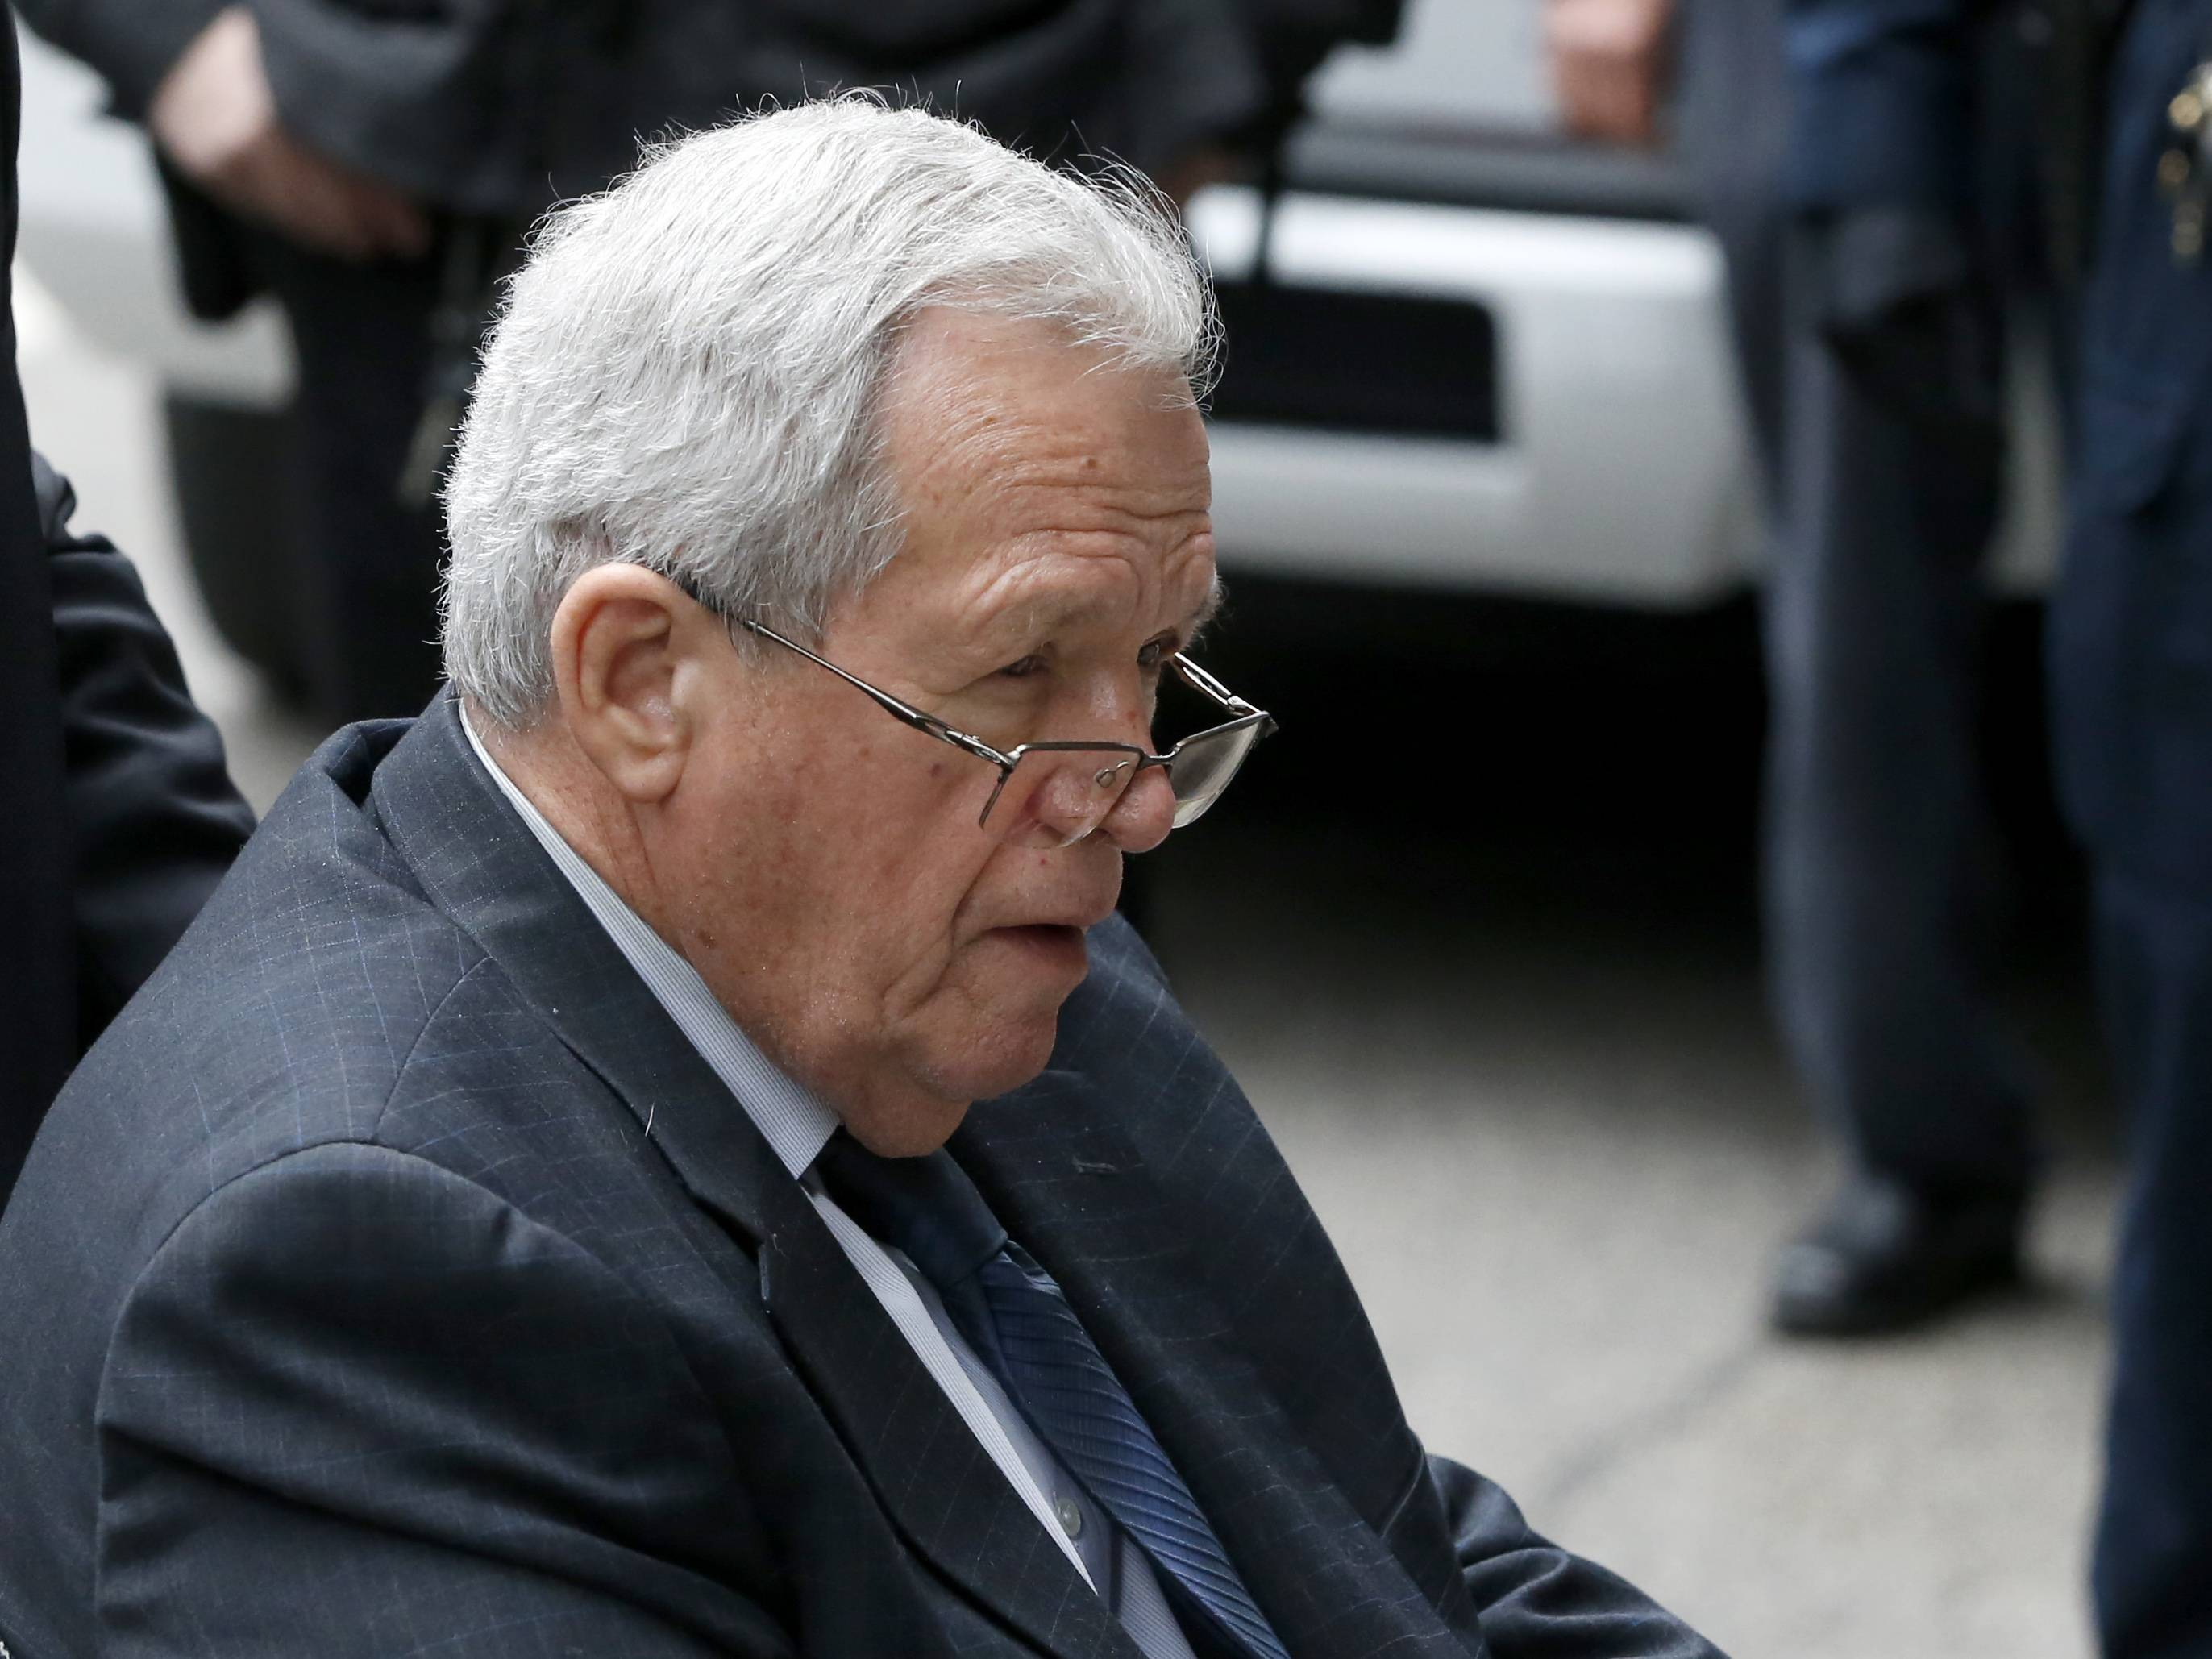 Pension board votes to suspend Hastert's $28,000 pension